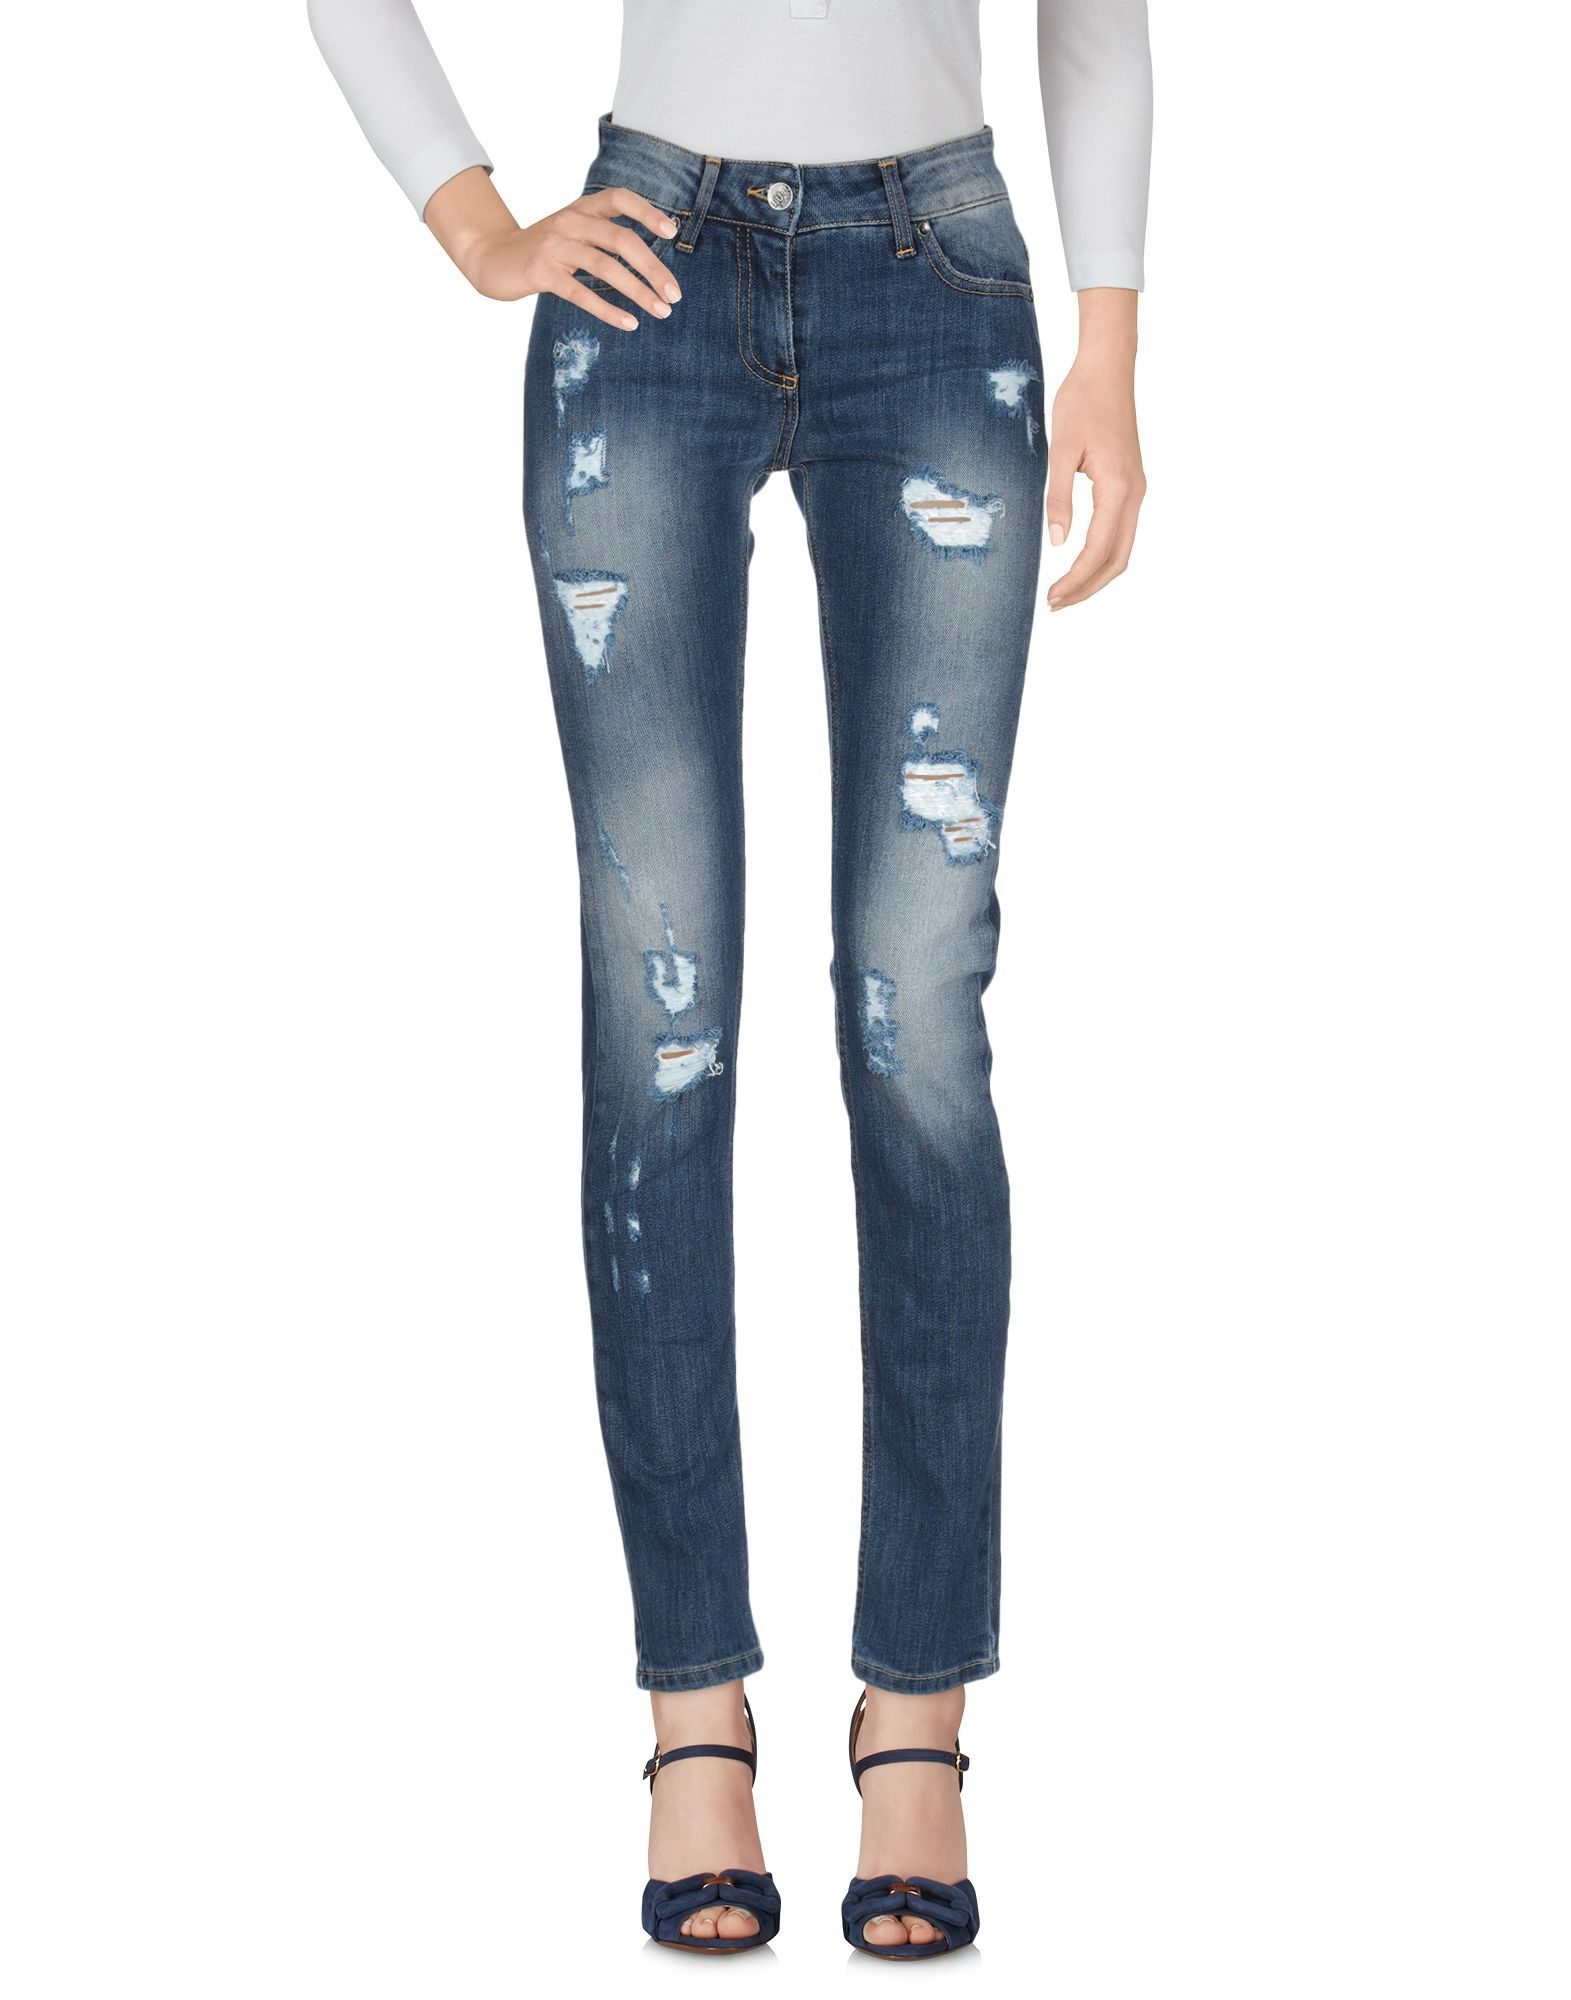 Liu Jo Blue Cotton Jeans